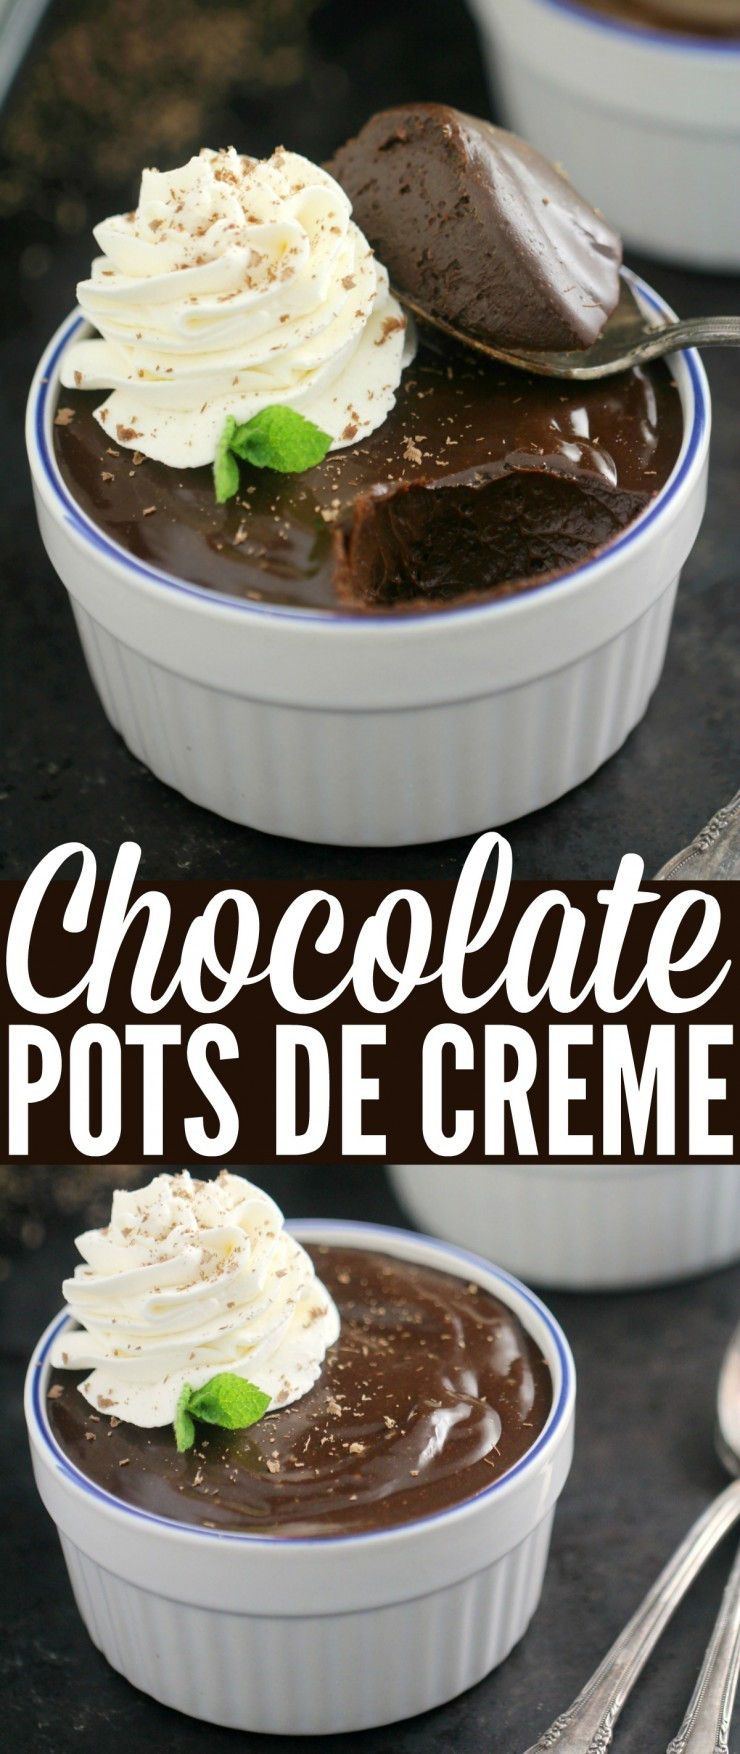 These Chocolate Pots de Crème are a truly decadent dessert. Chocolate, egg yolks, and just the right amount of heavy cream result in a rich chocolate custard perfect for serving guests or simply celebrating with a special someone.